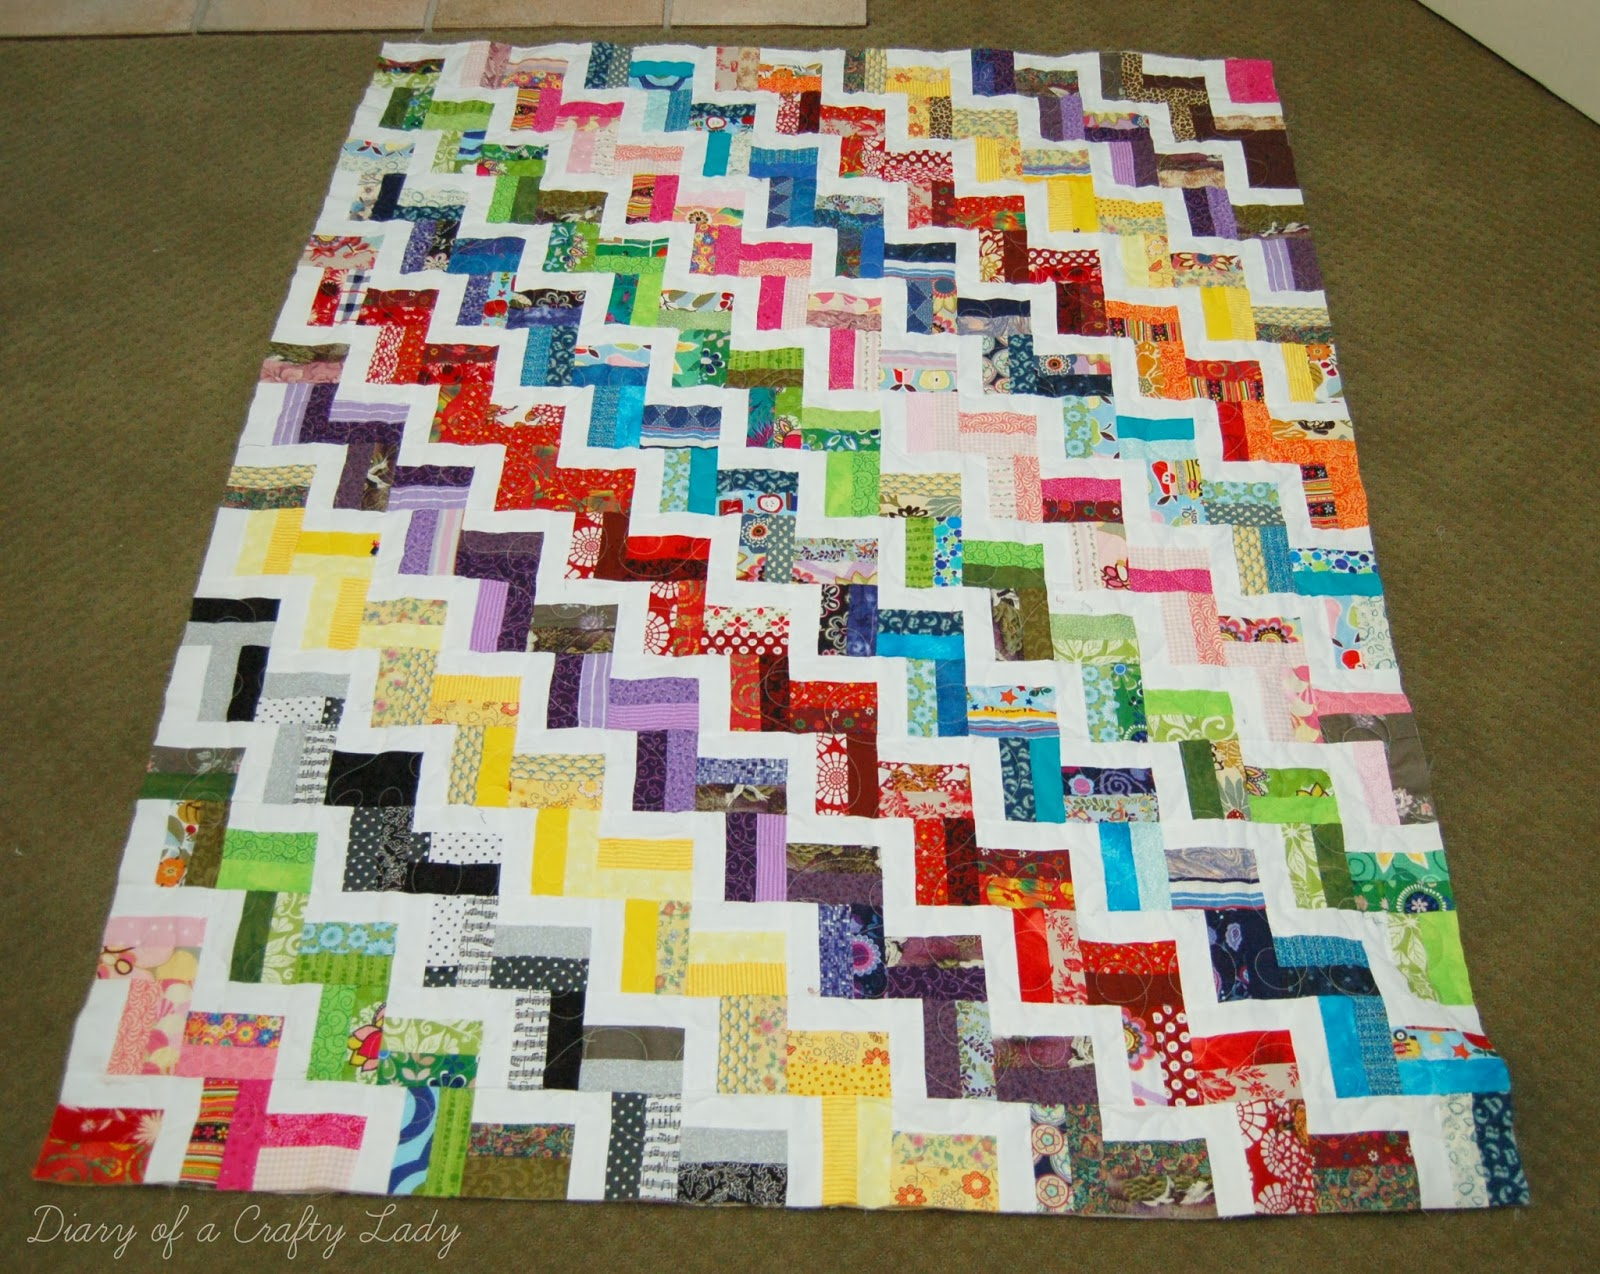 Diary of a Crafty Lady: Finished Zig Zag Scrap Quilt